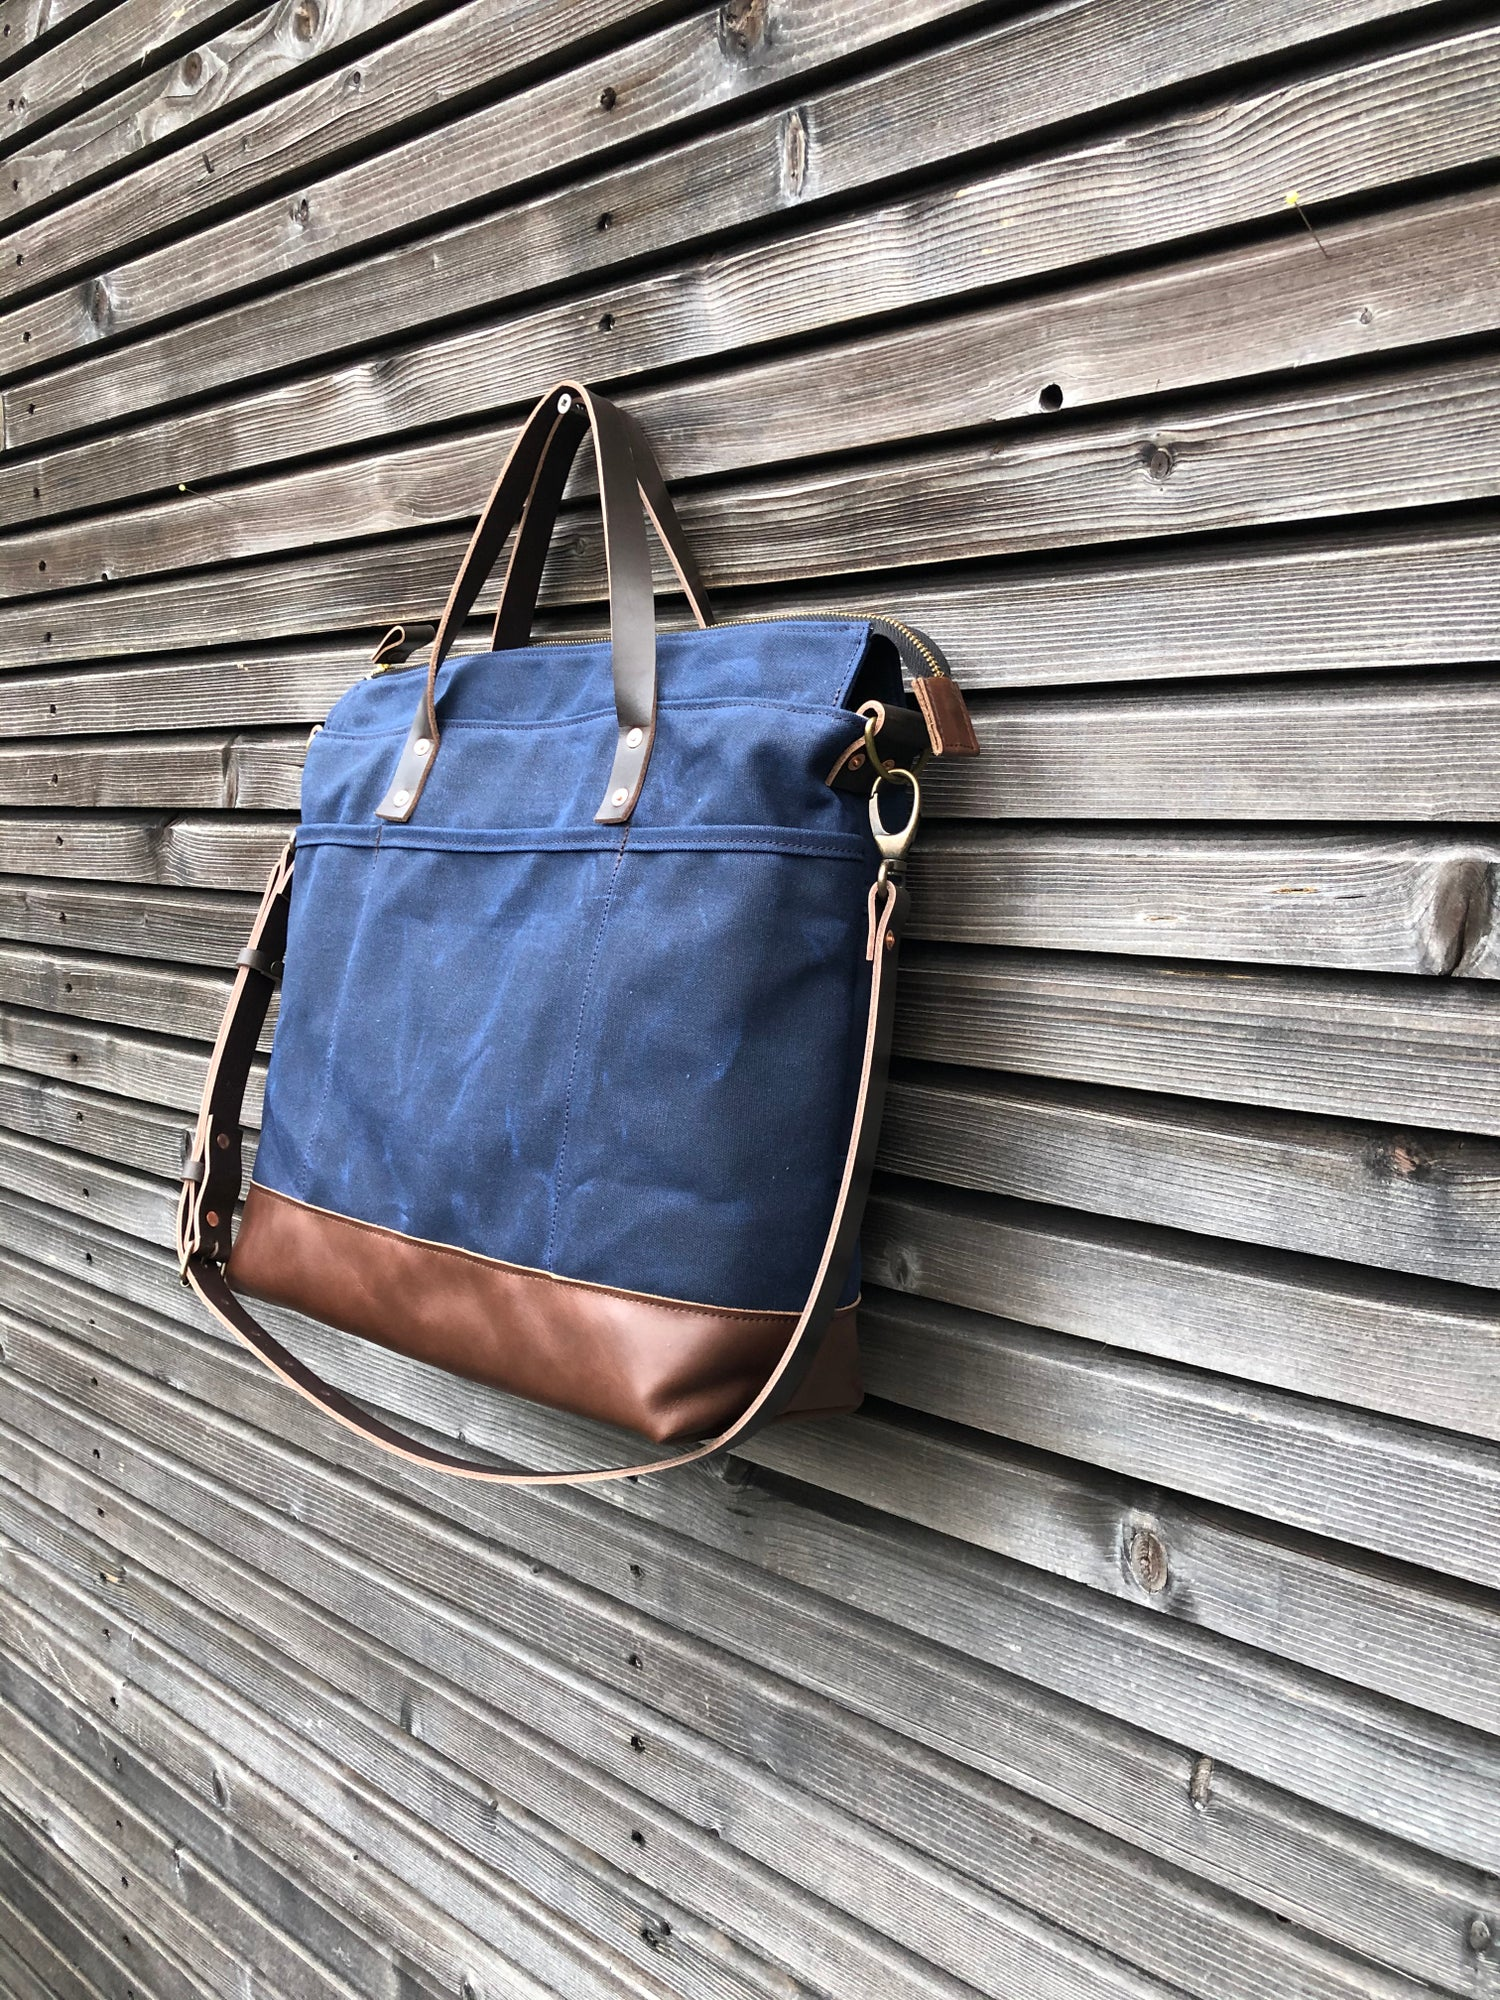 Image of Office tote bag made in blue waxed canvas, with detachable shoulder strap